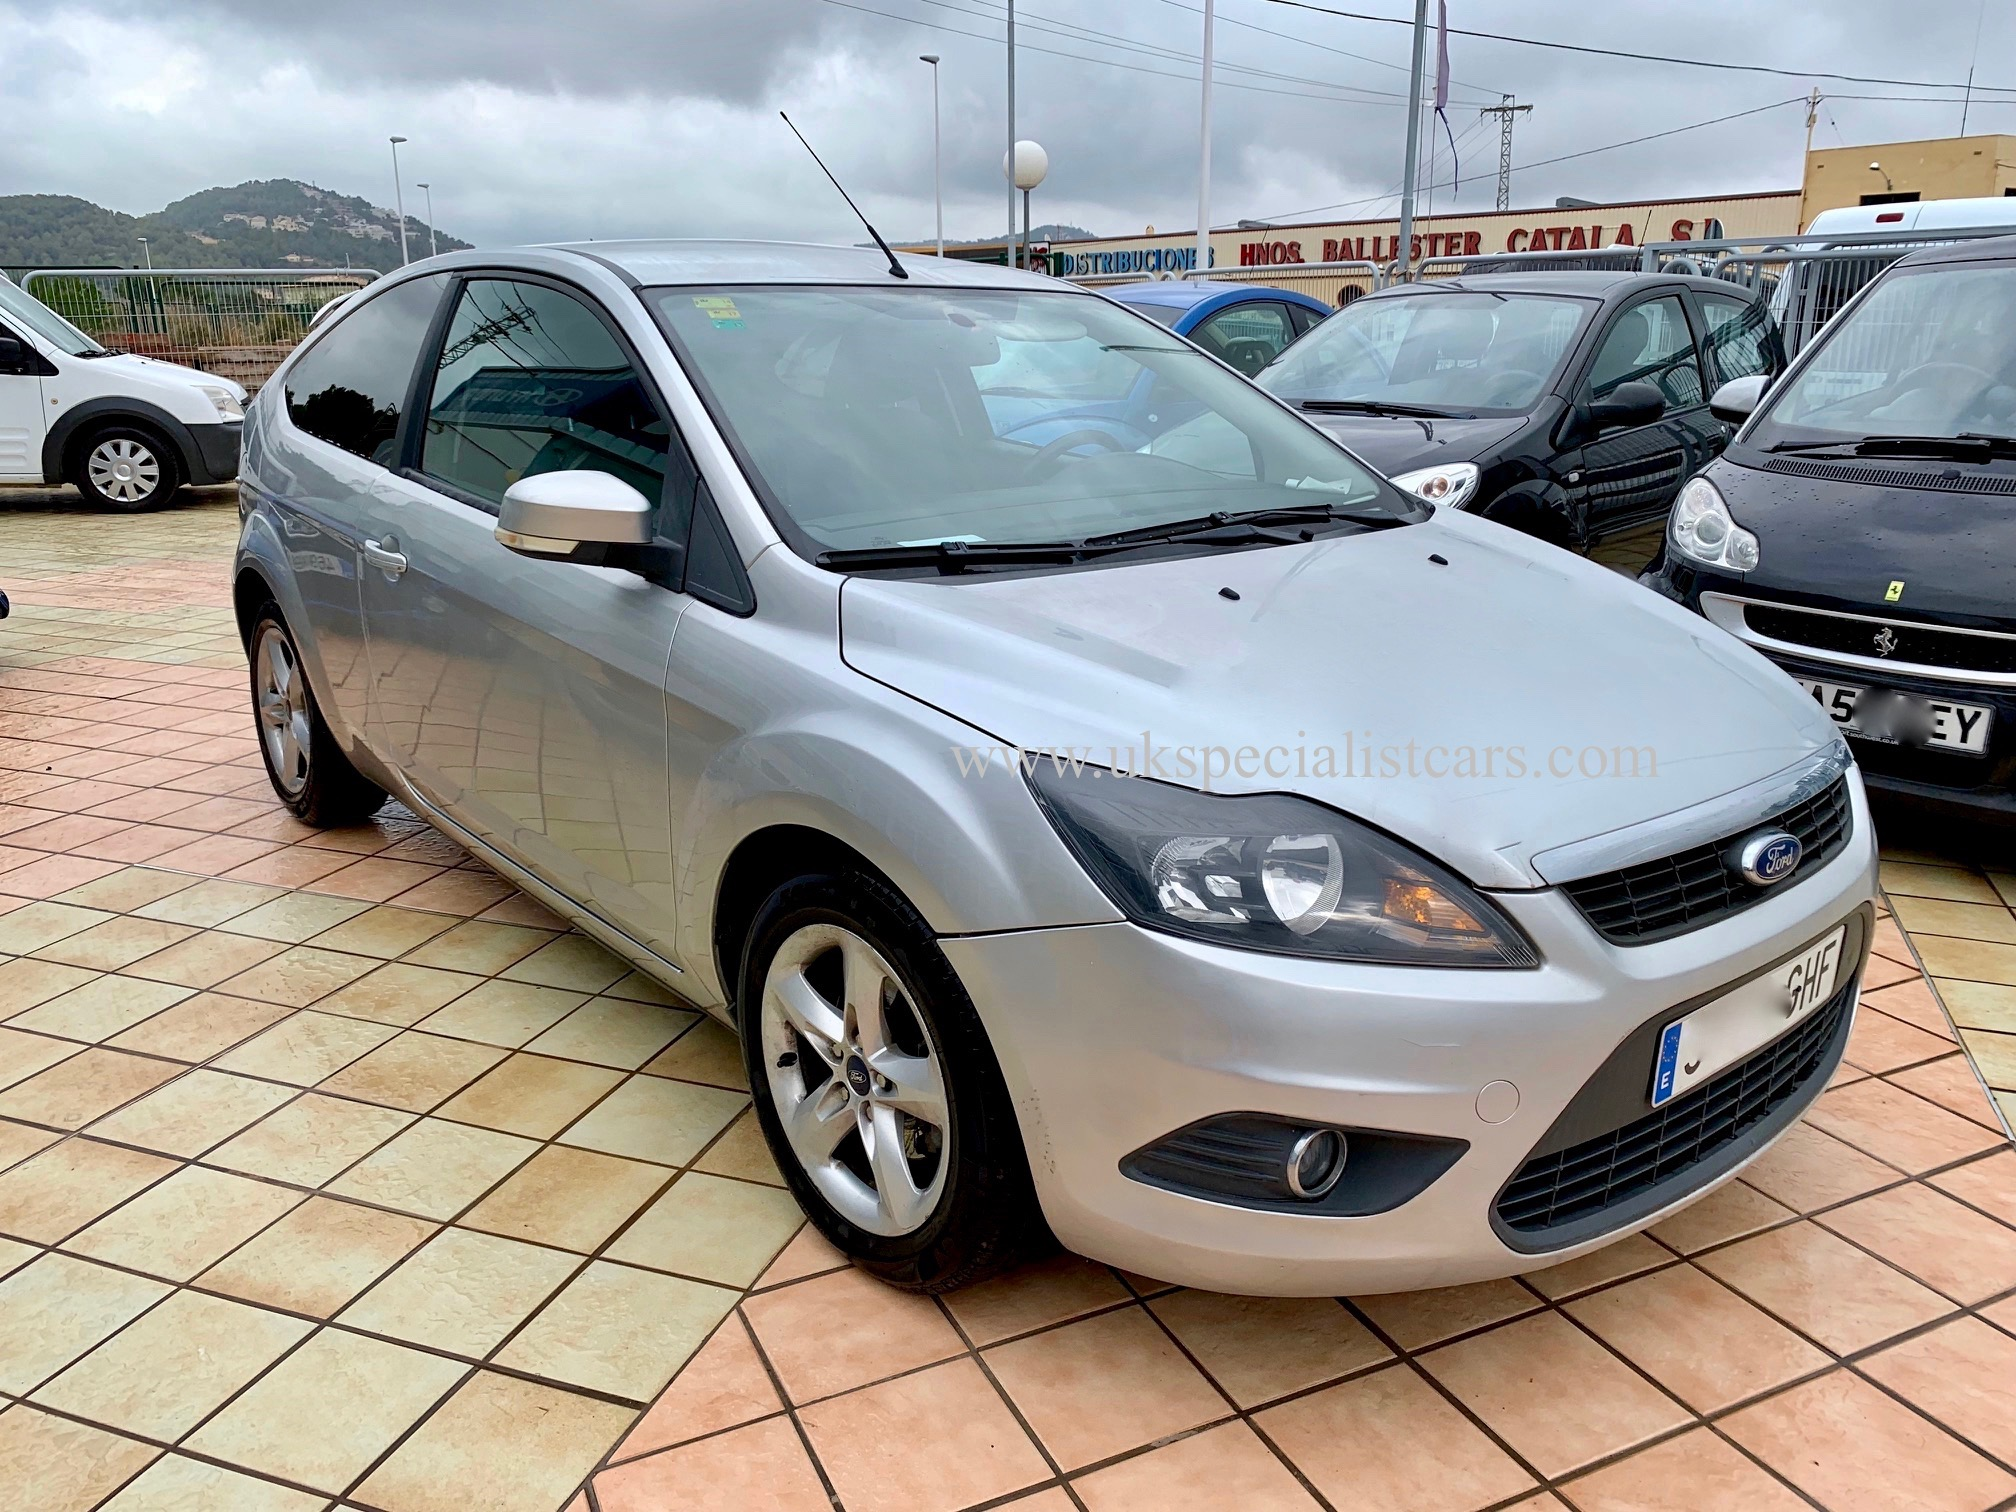 lhd ford focus 1 6 titanium automatic lhd in spain. Black Bedroom Furniture Sets. Home Design Ideas